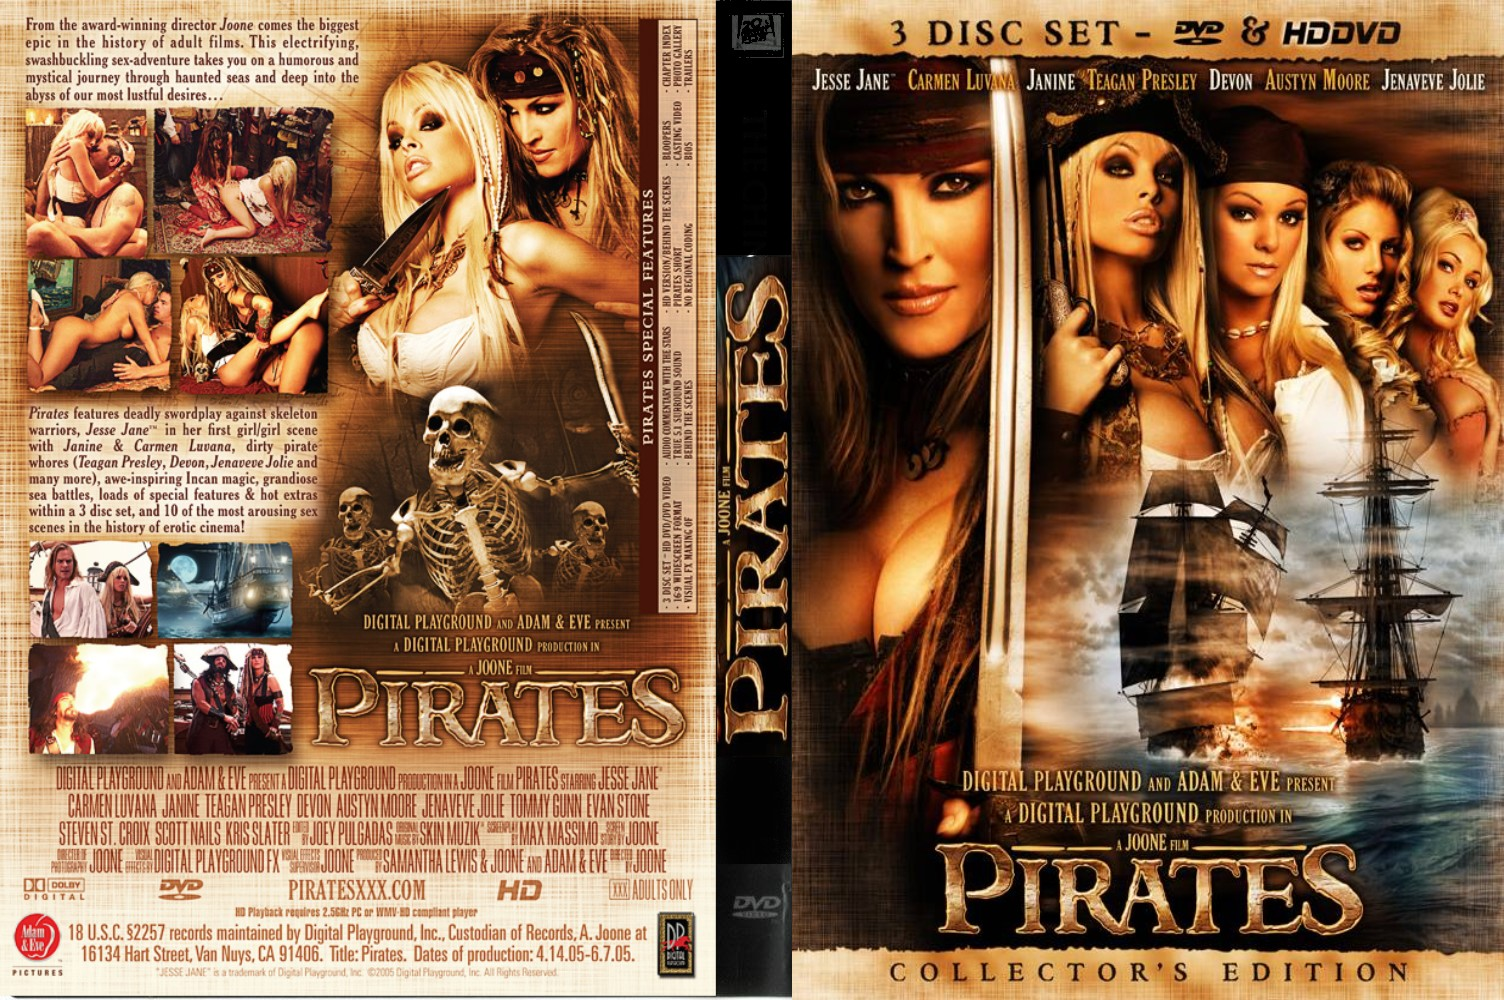 Pirates porn movie free download hentai film